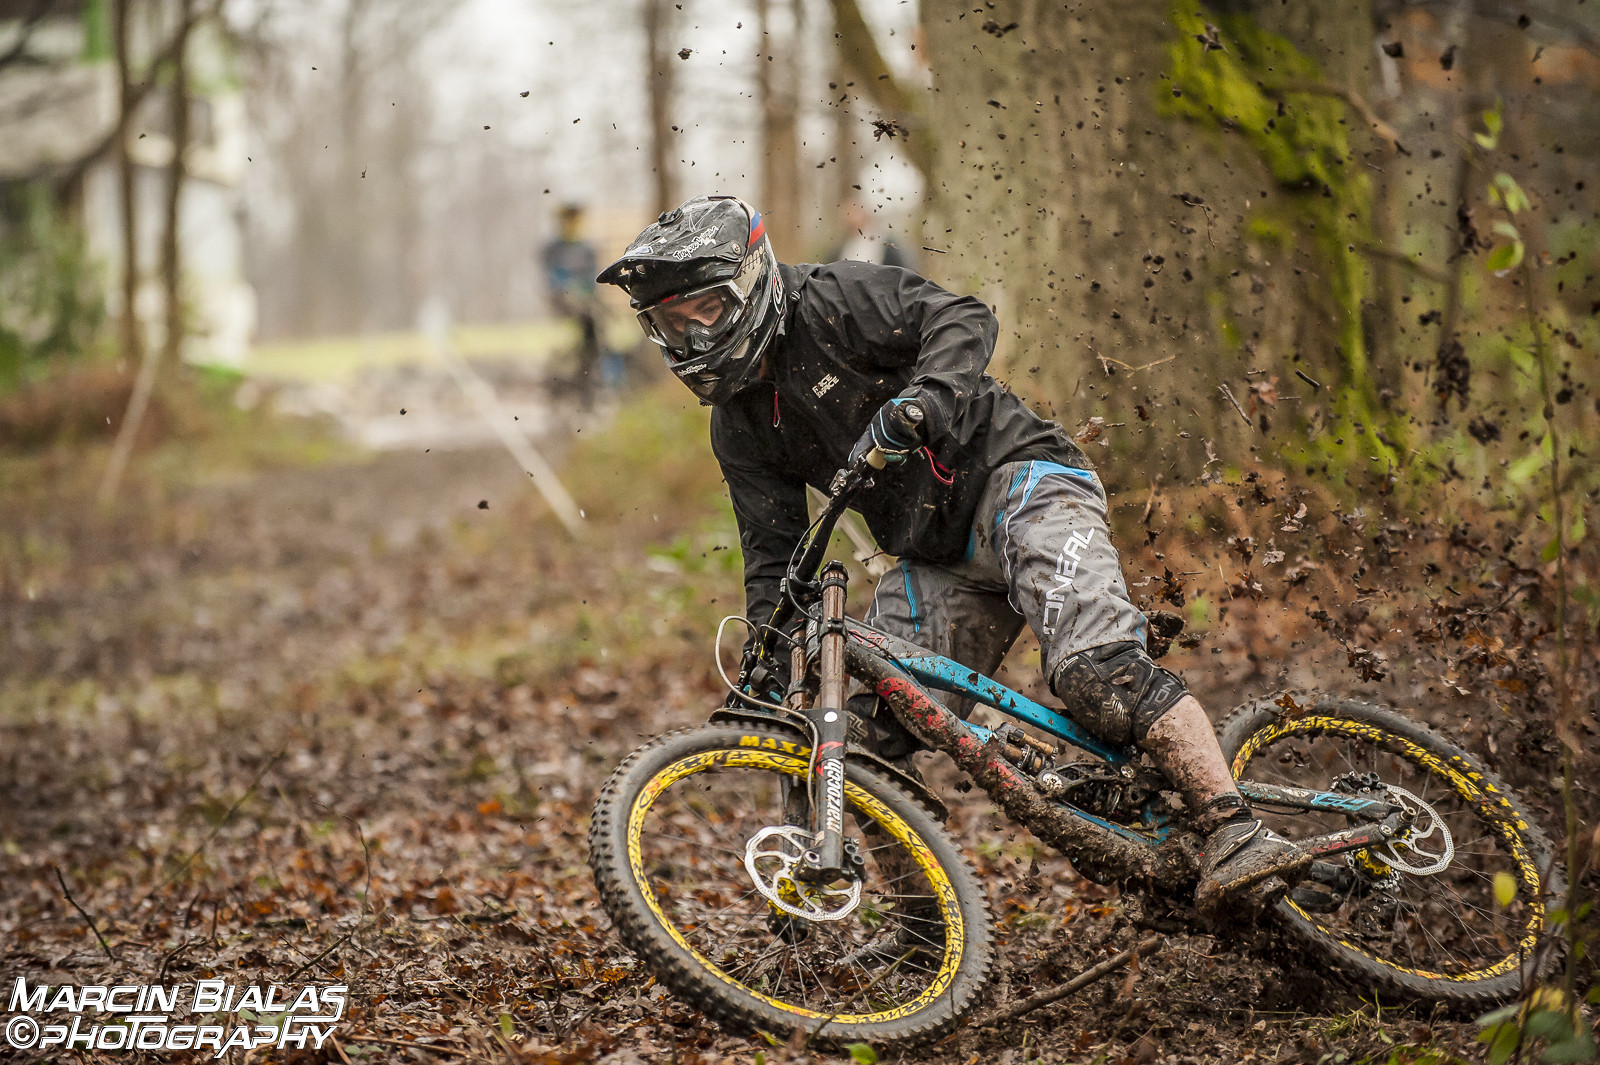 Roosting - Marcin Bialas Photography - Mountain Biking Pictures - Vital MTB